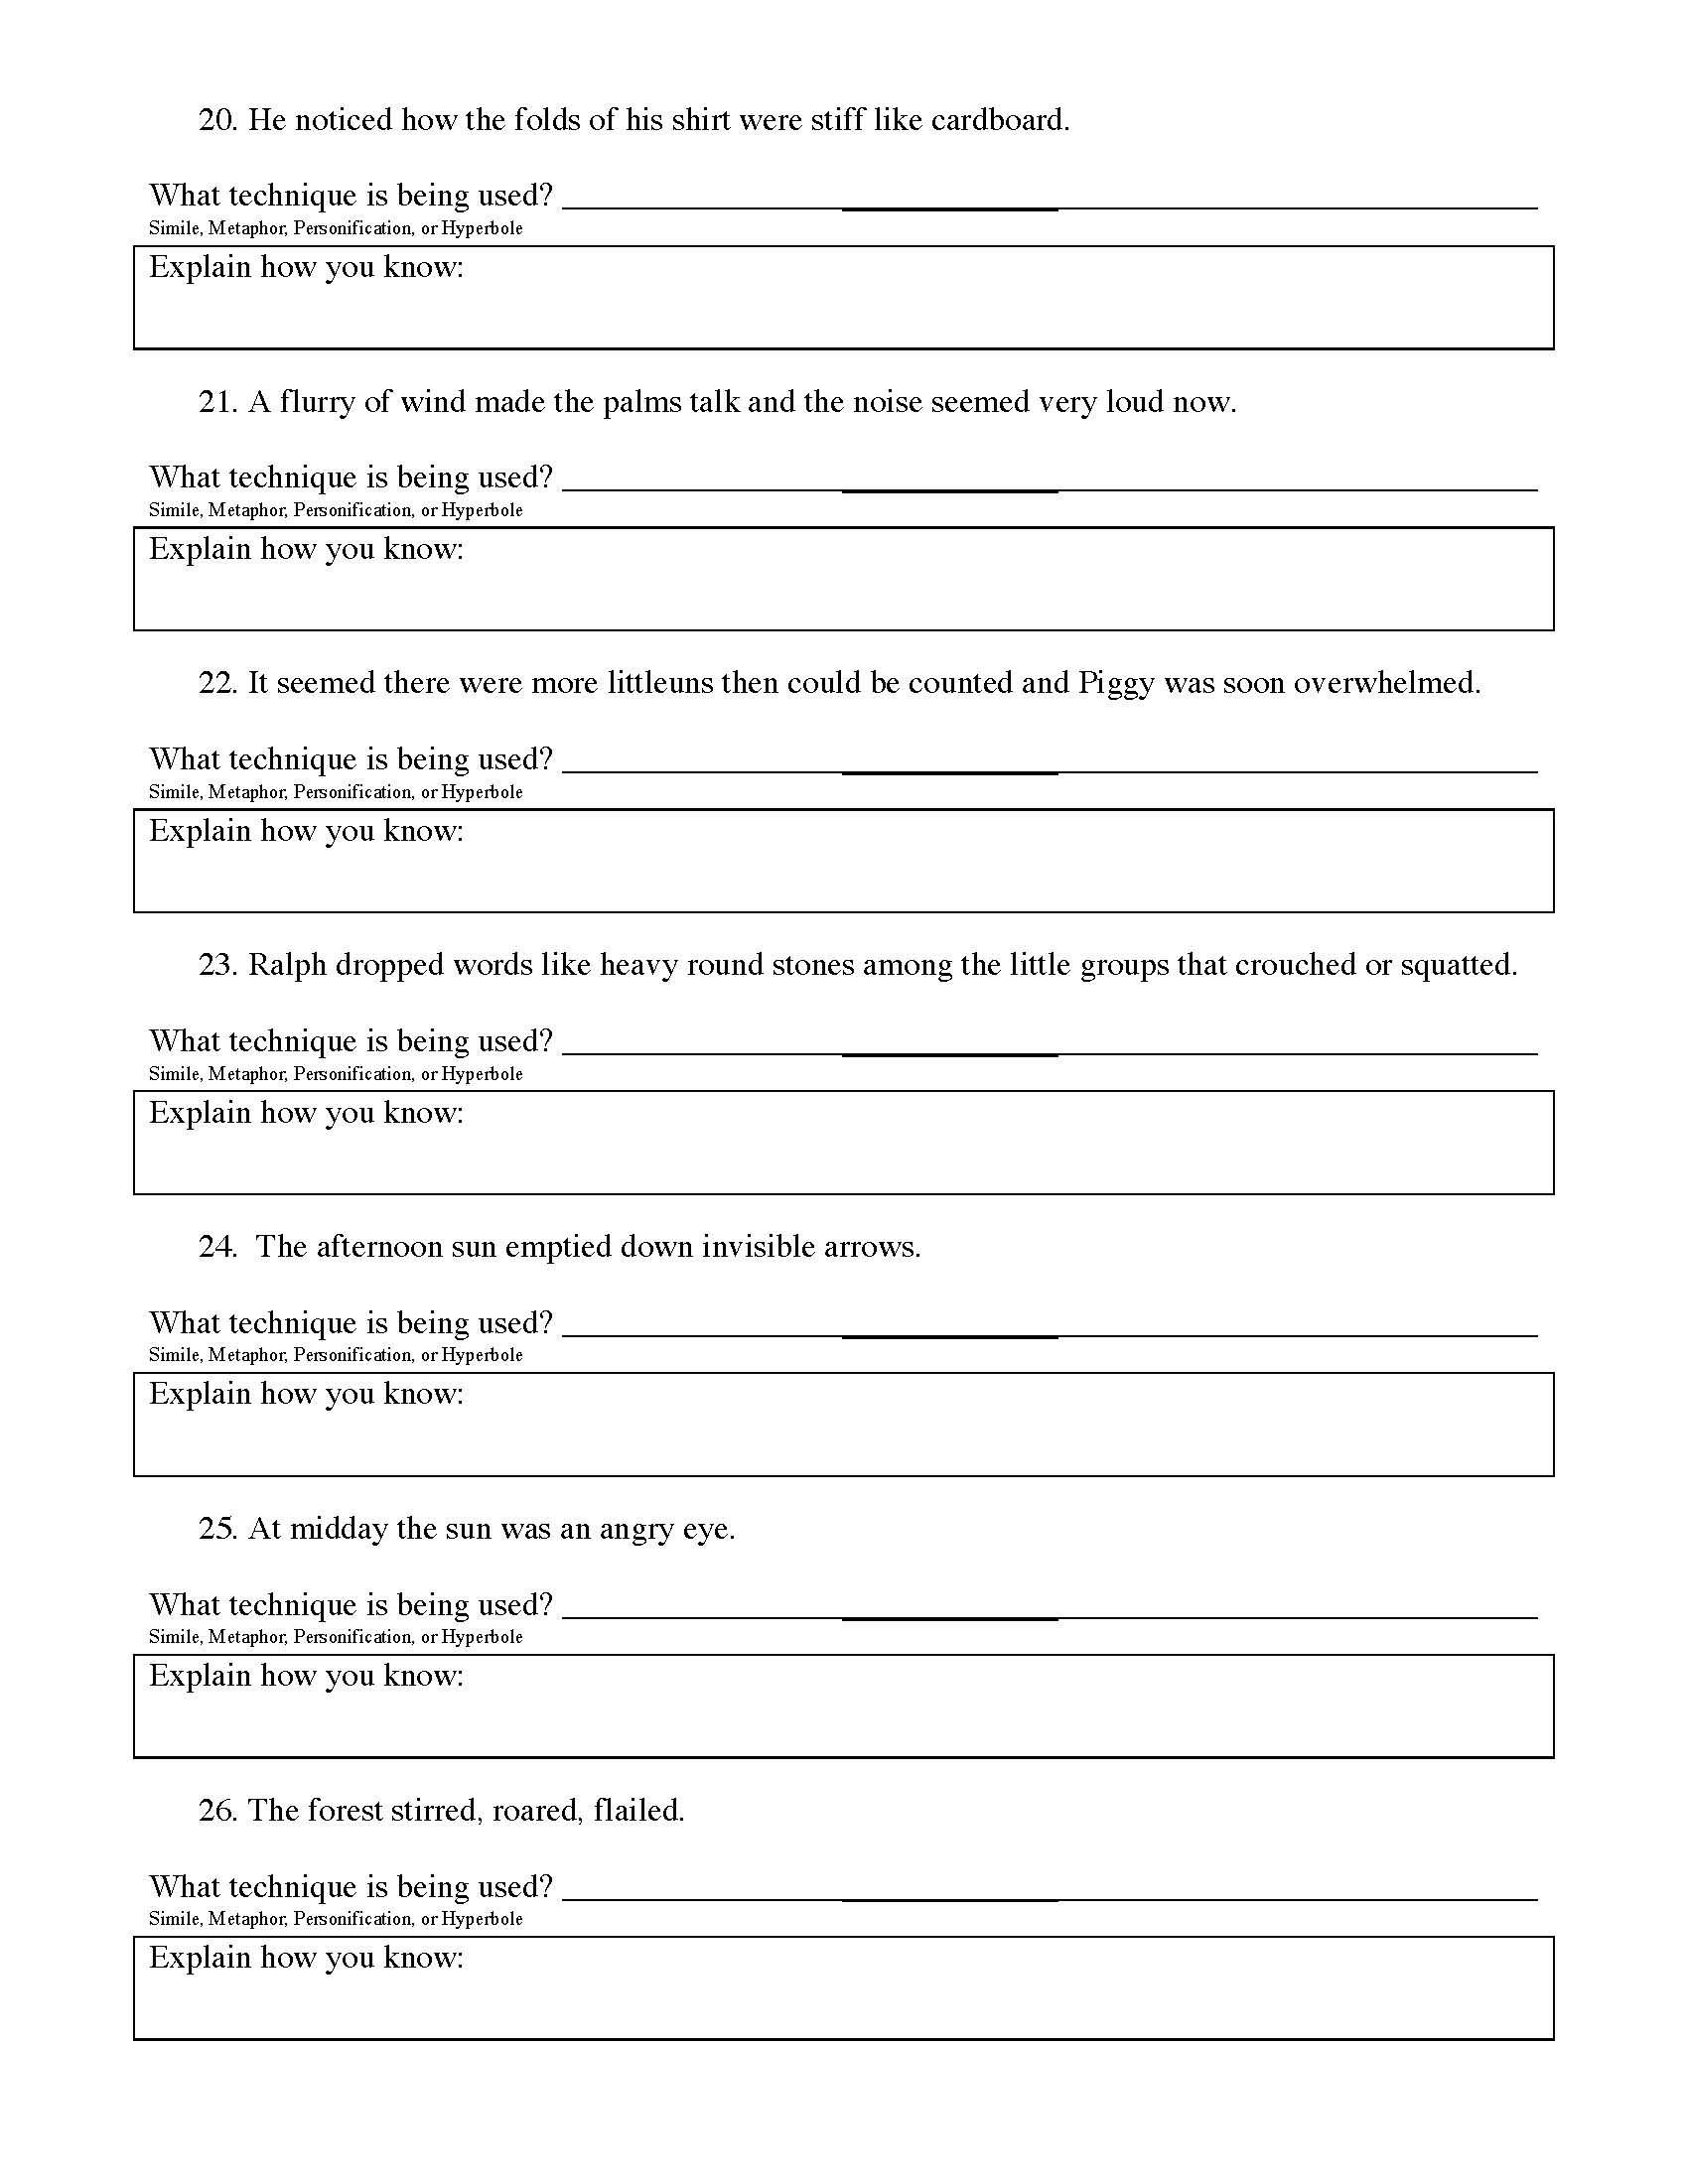 Figurative Language Worksheet - Lord of the Flies | Preview